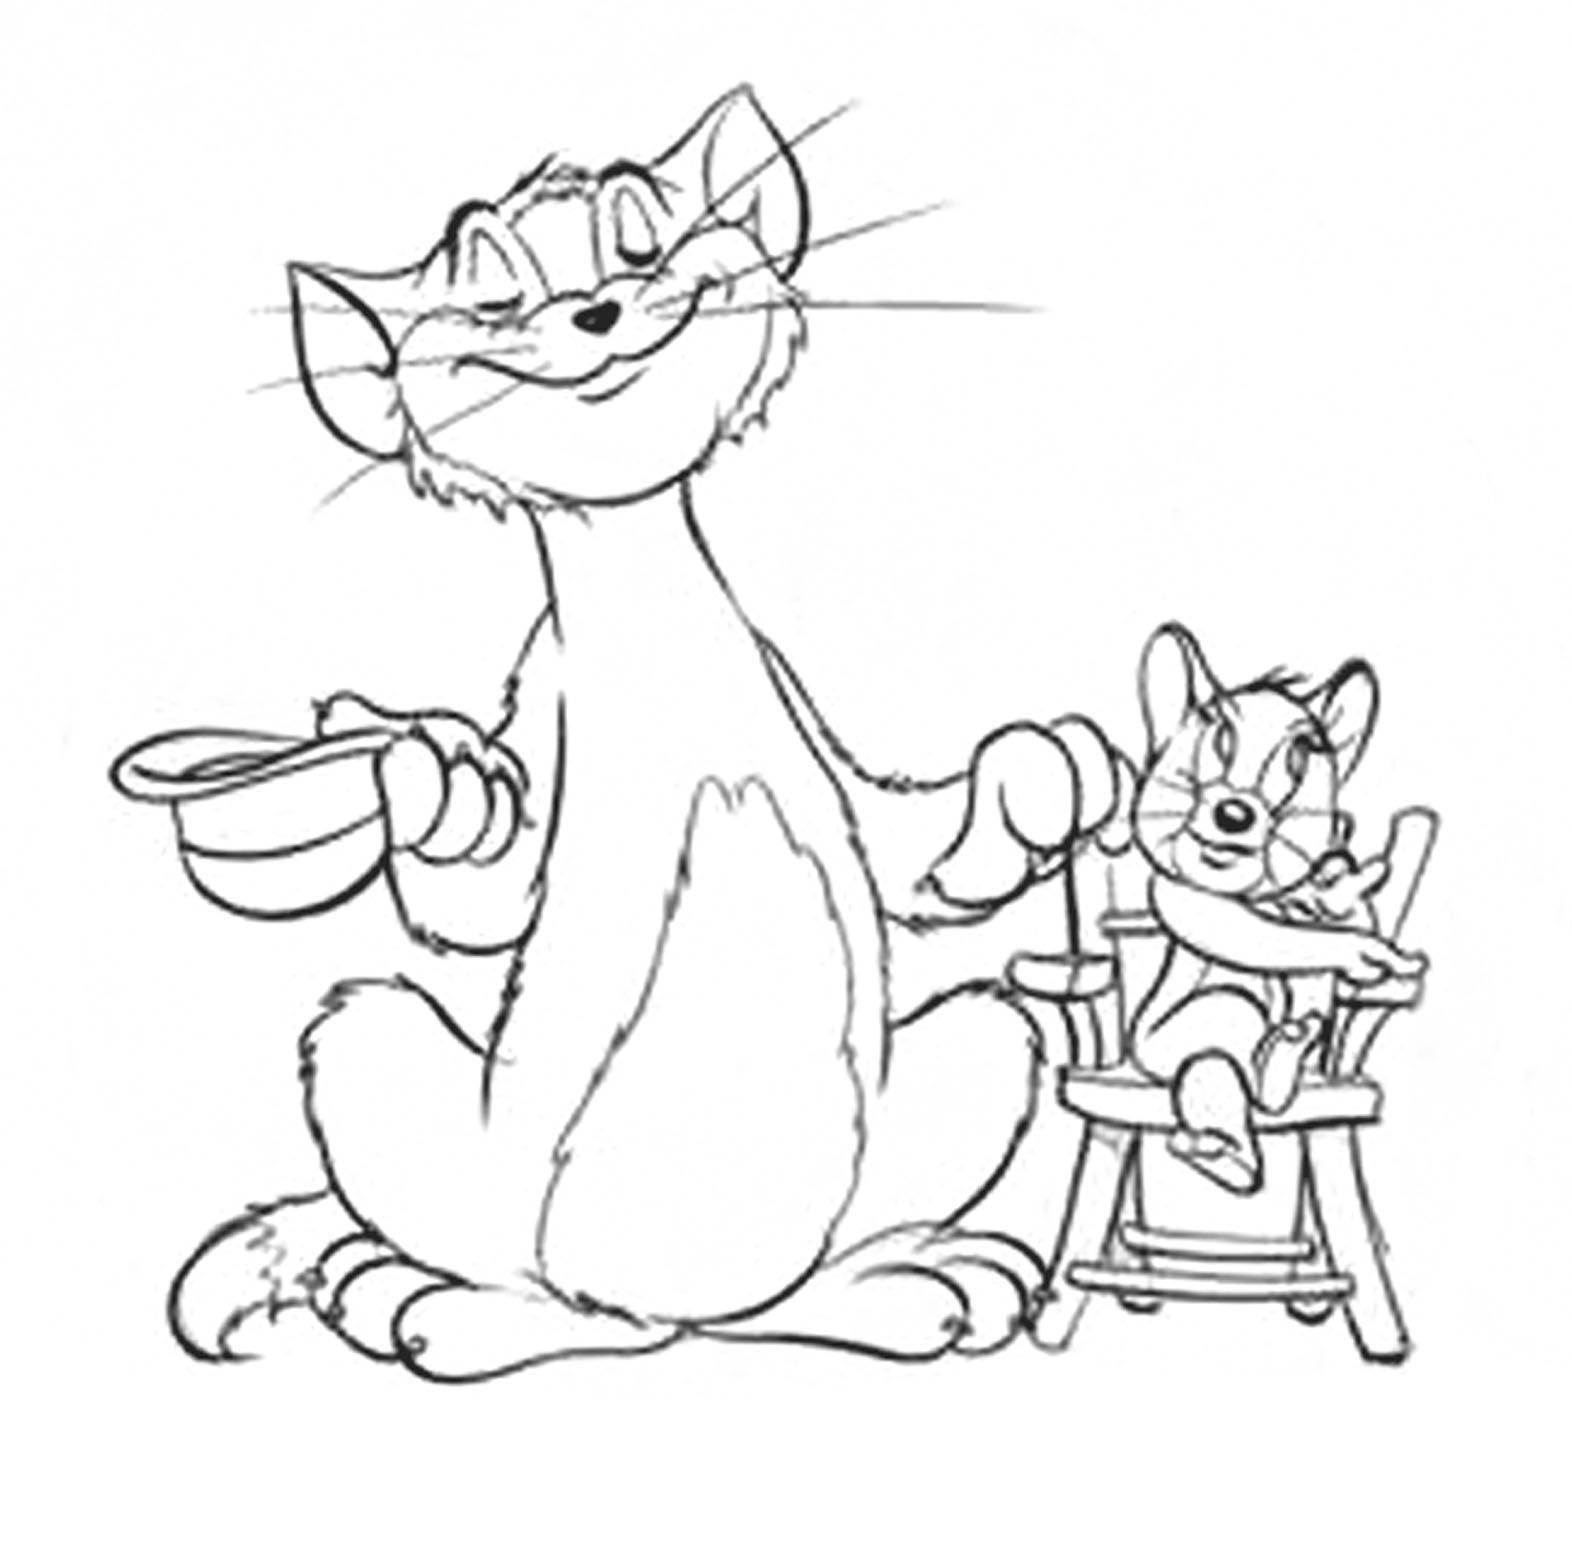 Tom and Jerry Line art for coloring | Coloring Sheets | Pinterest